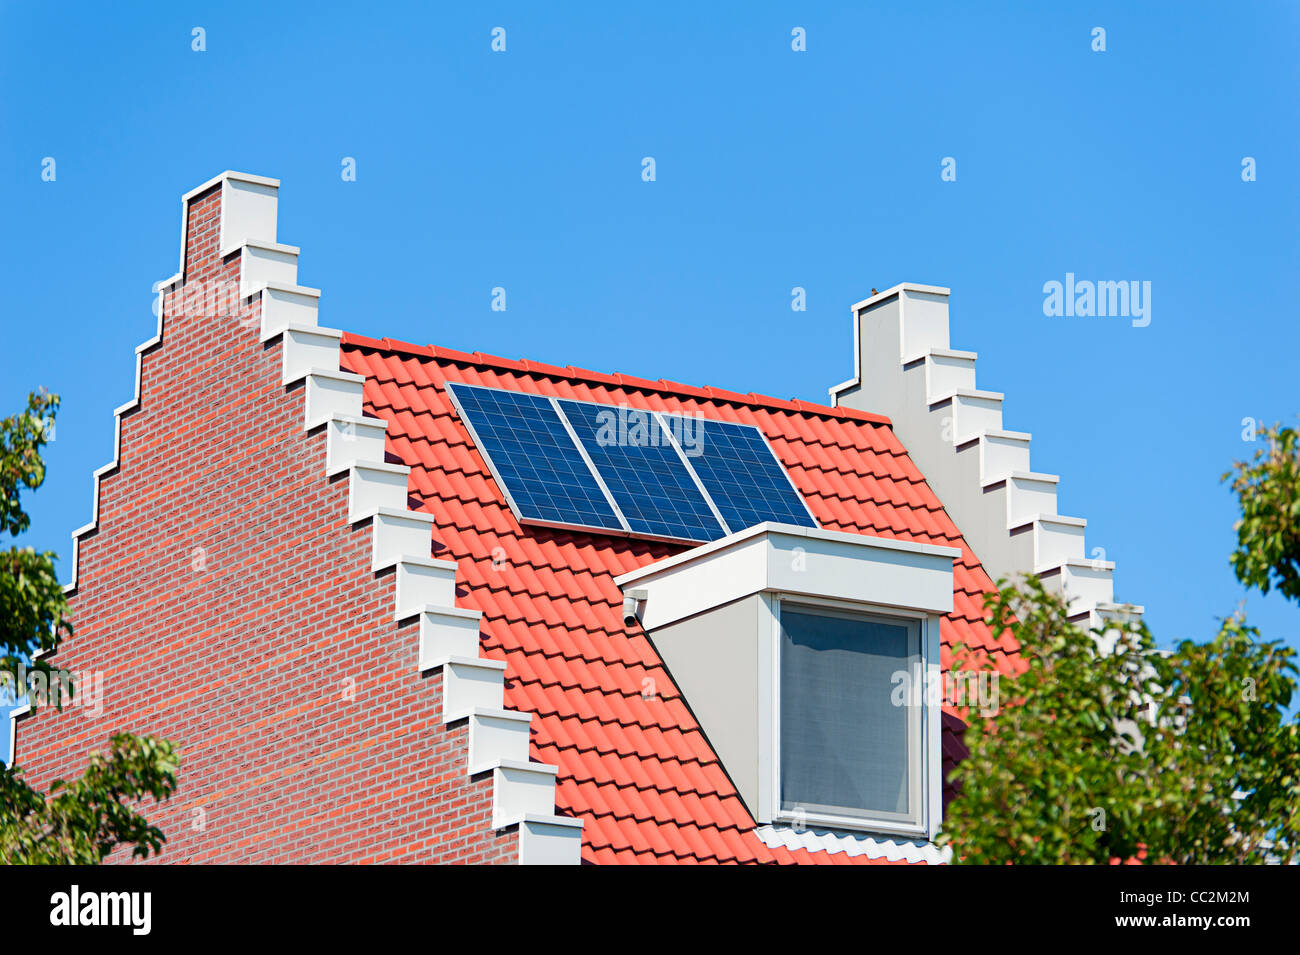 Modern Dutch house with solar panels on roof - Stock Image